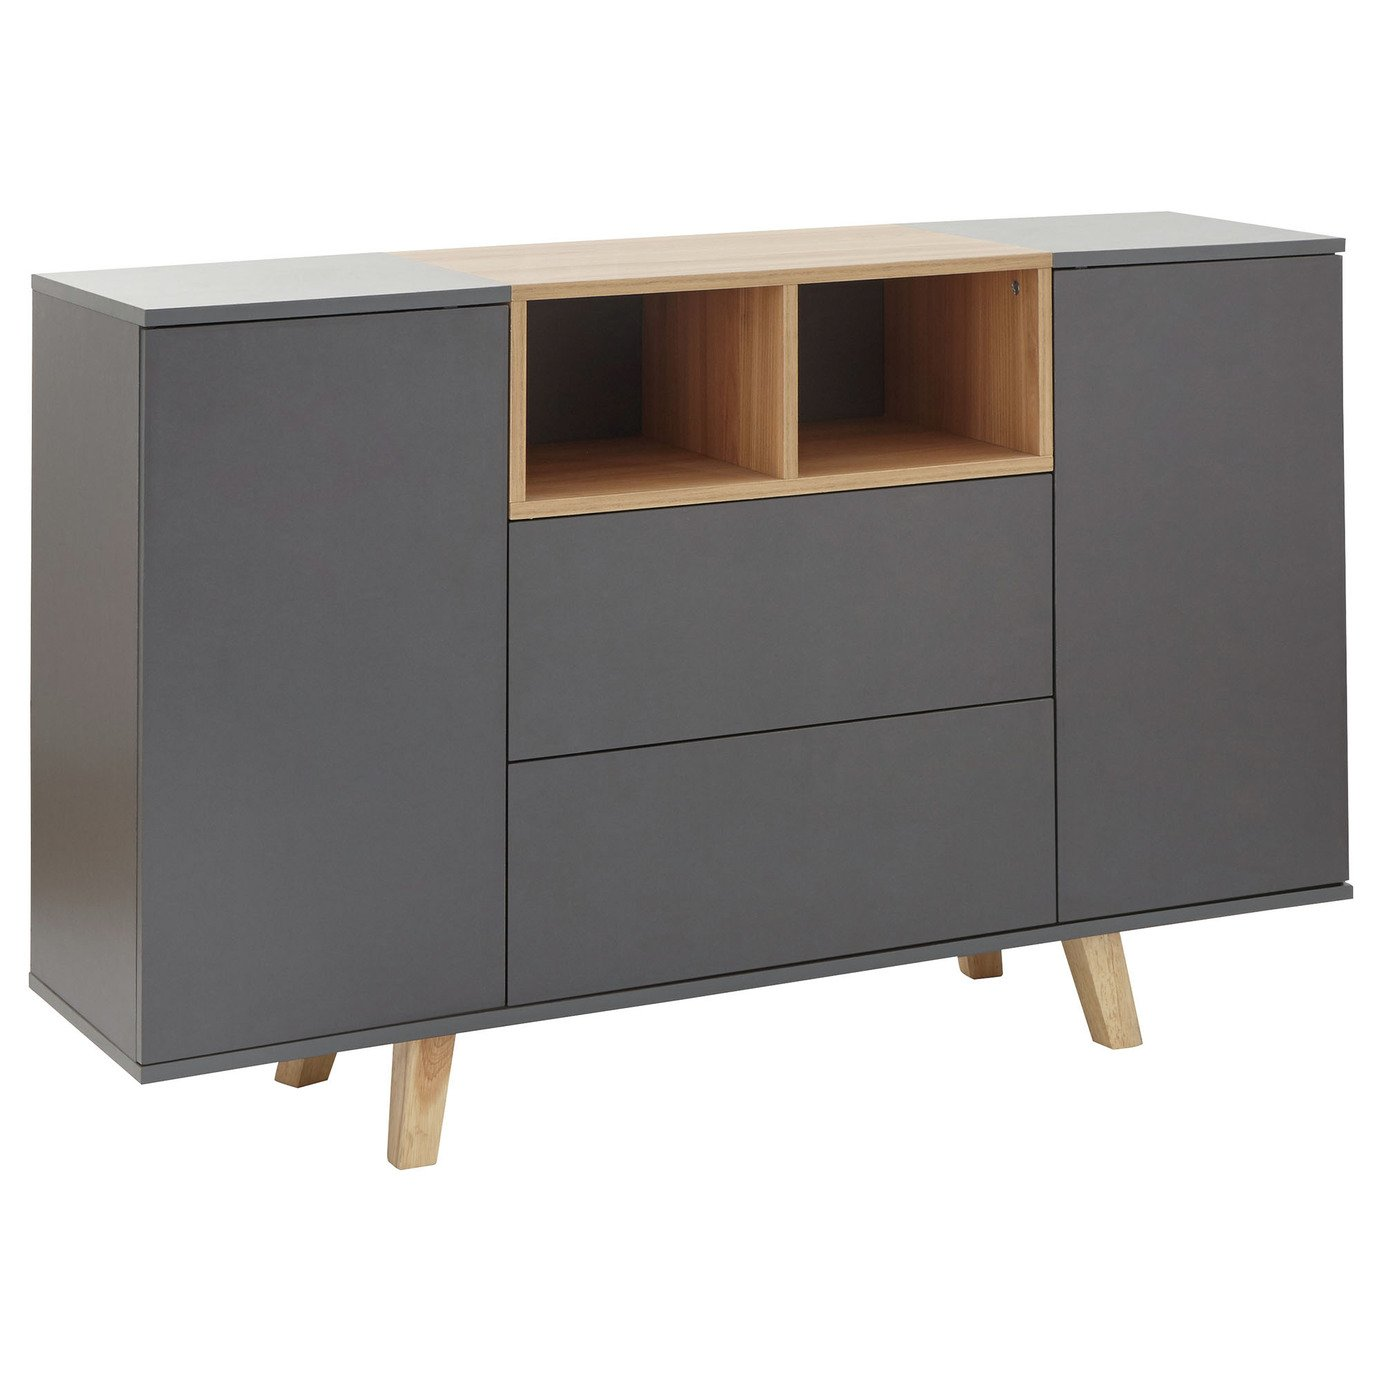 Modena 2 Door 2 Drawer Sideboard - Grey